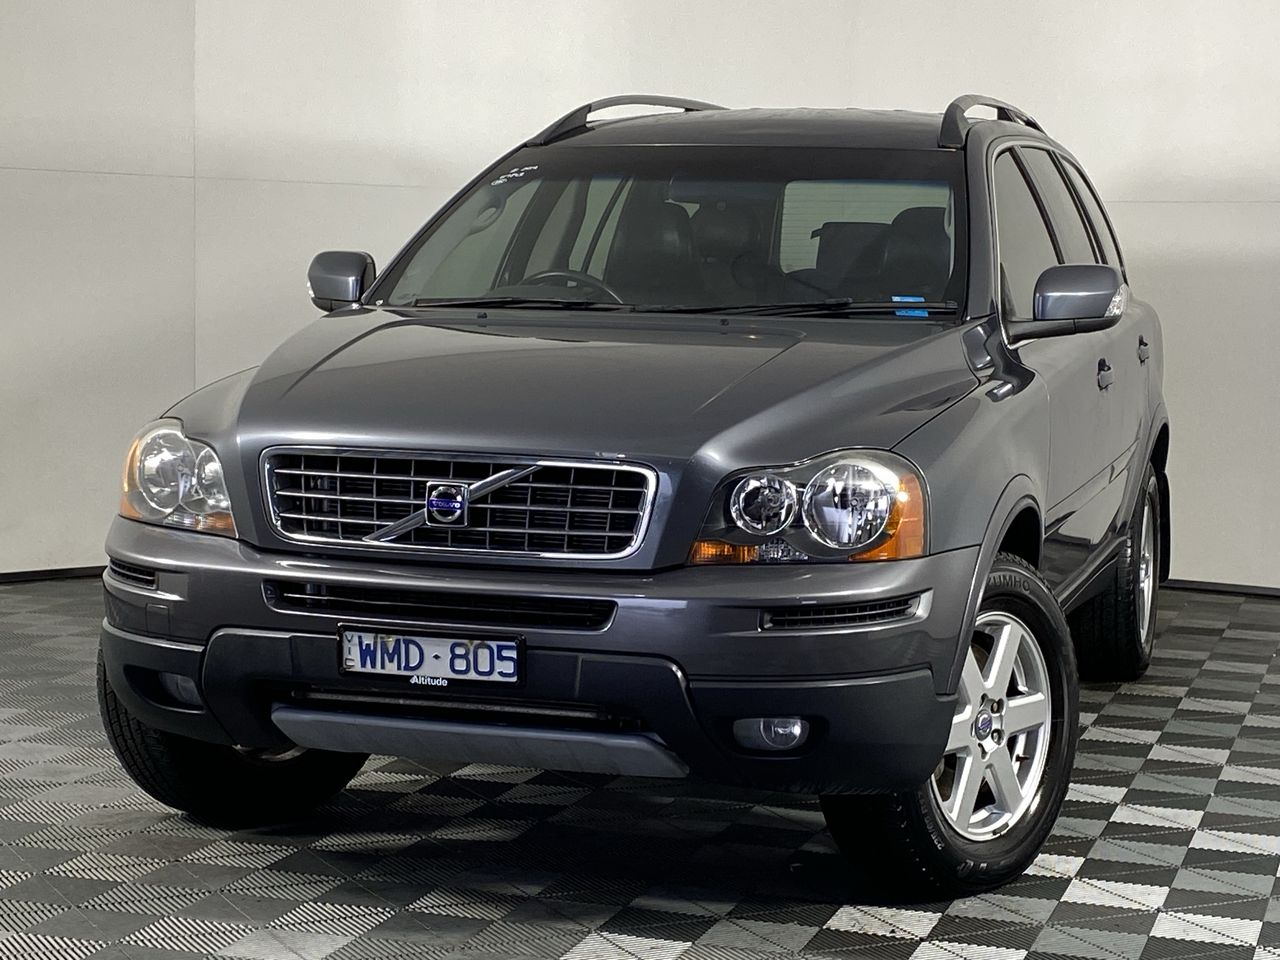 2008 Volvo XC90 3.2 Automatic 7 Seats Wagon